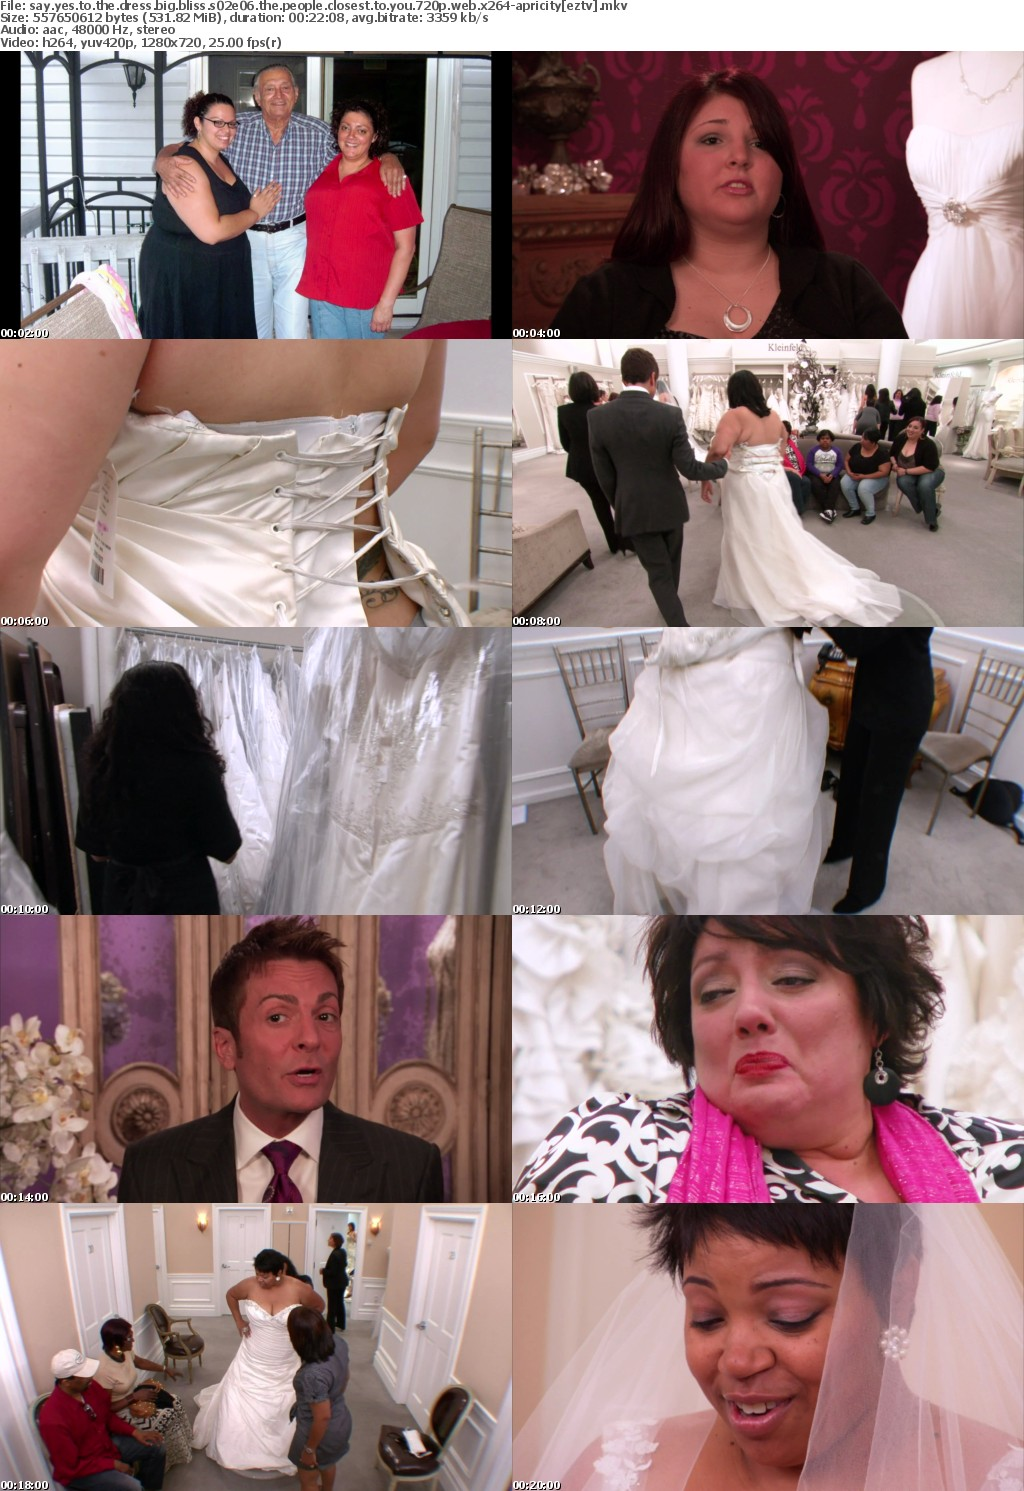 Say Yes to the Dress Big Bliss S02E06 The People Closest to You 720p WEB x264-APRiCiTY